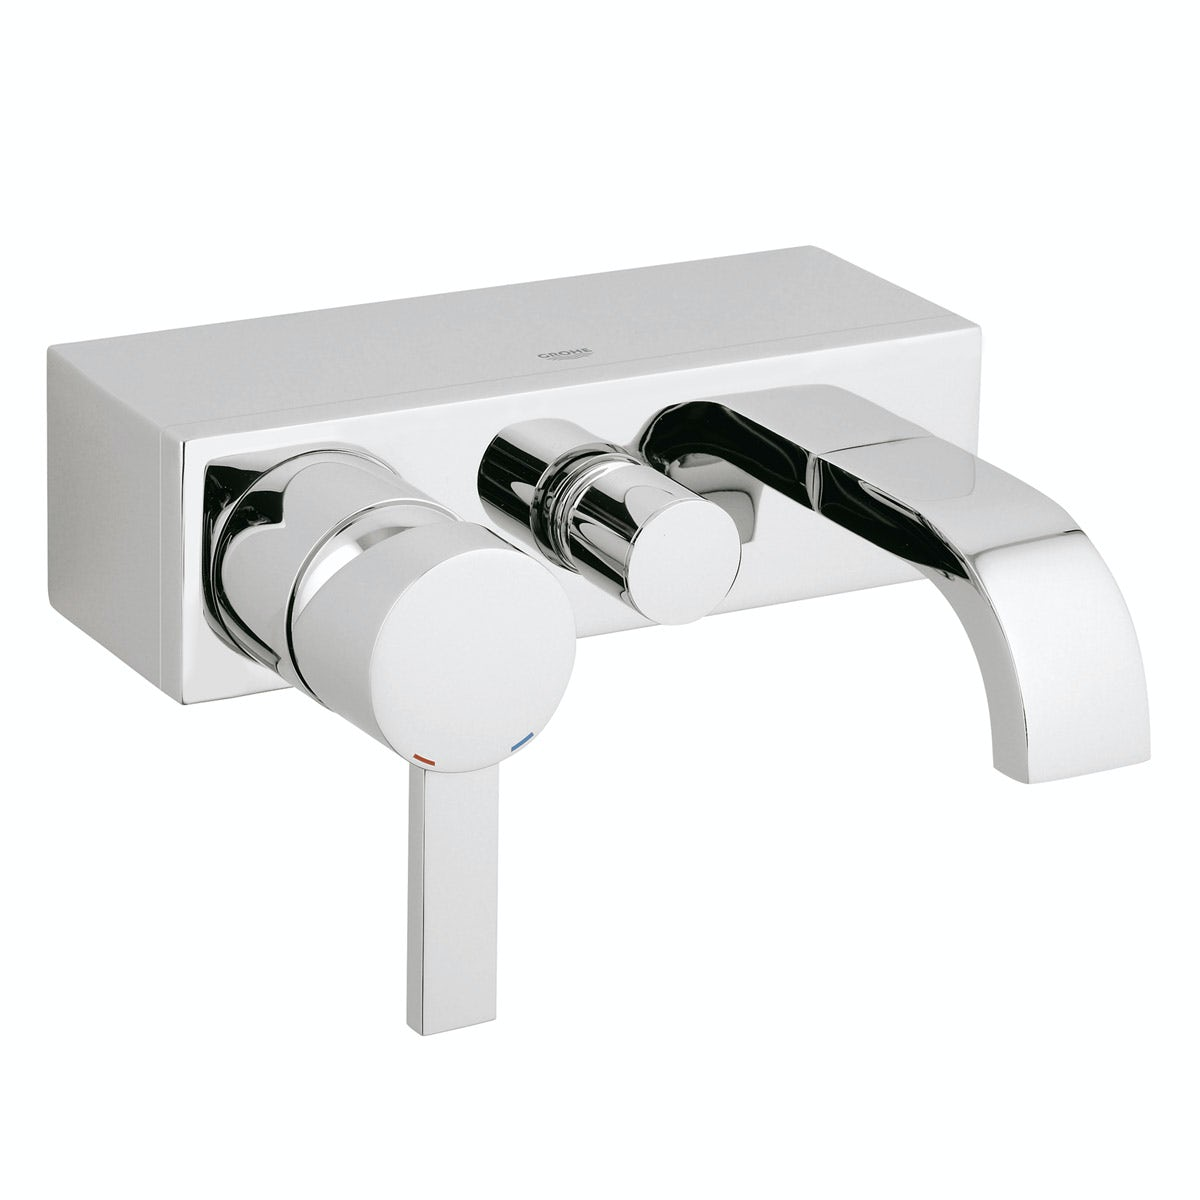 Grohe Allure wall mounted bath shower mixer tap